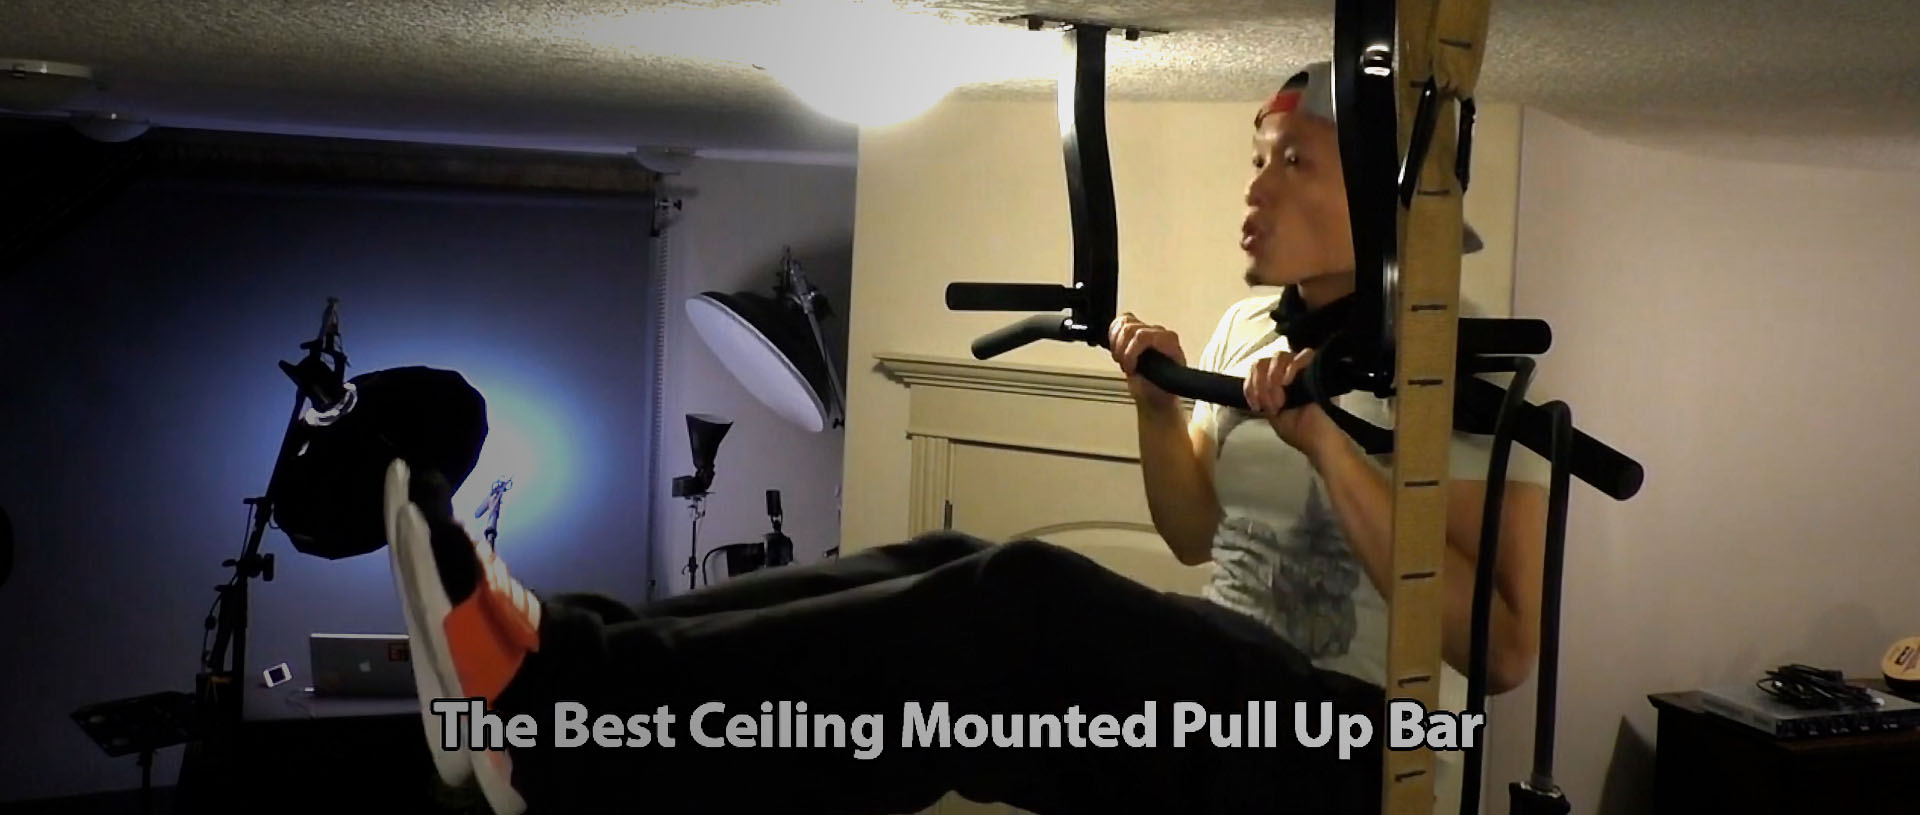 The Best Ceiling Mounted Pull Up Bar Not So Ancient Chinese Secrets